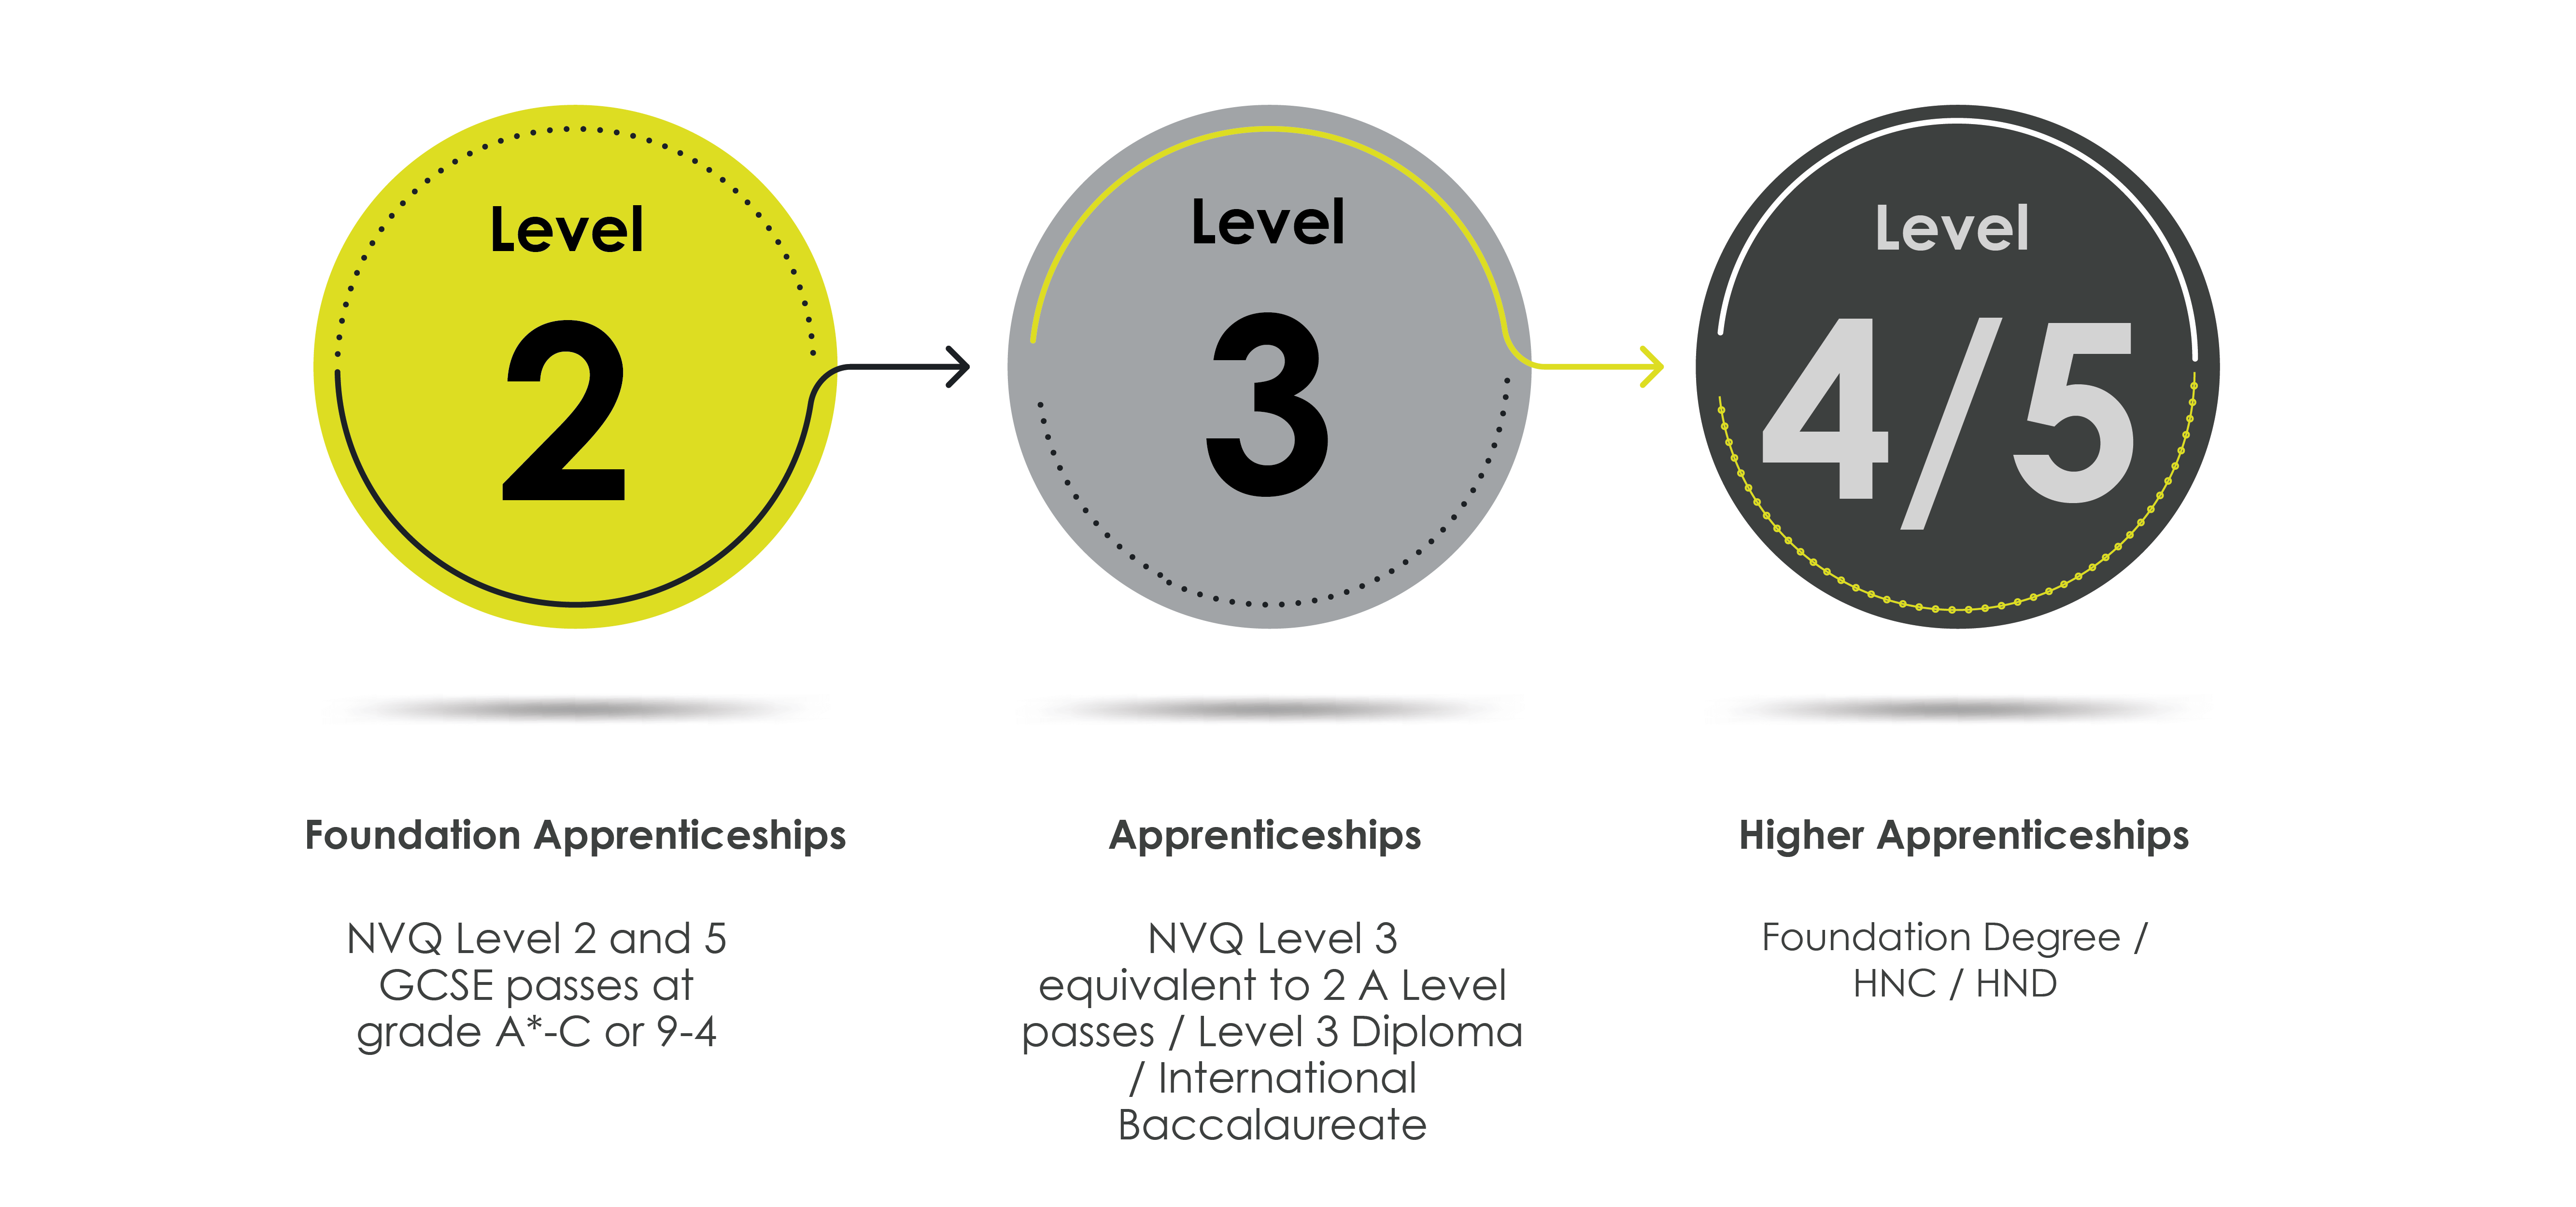 An illustration showing the different levels of for apprenticeships and the equivalent in GCSEs and A-Levels